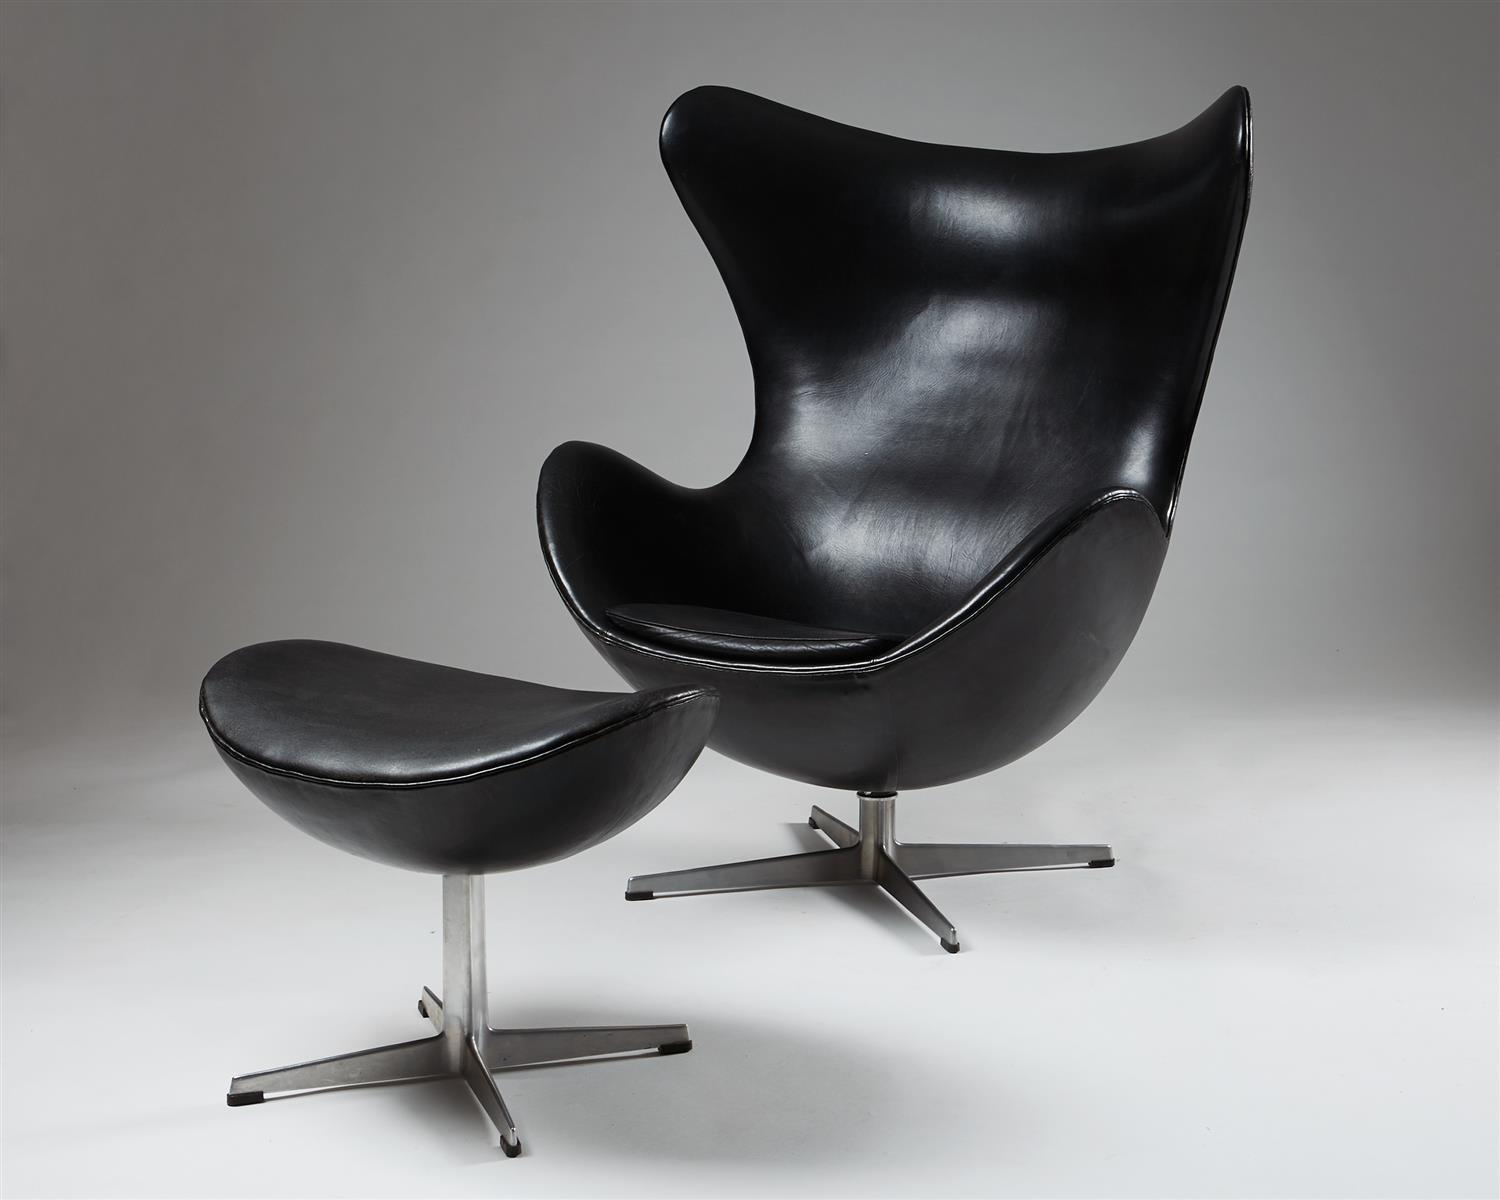 Arm Chair Foot Stool Egg Designed Arne